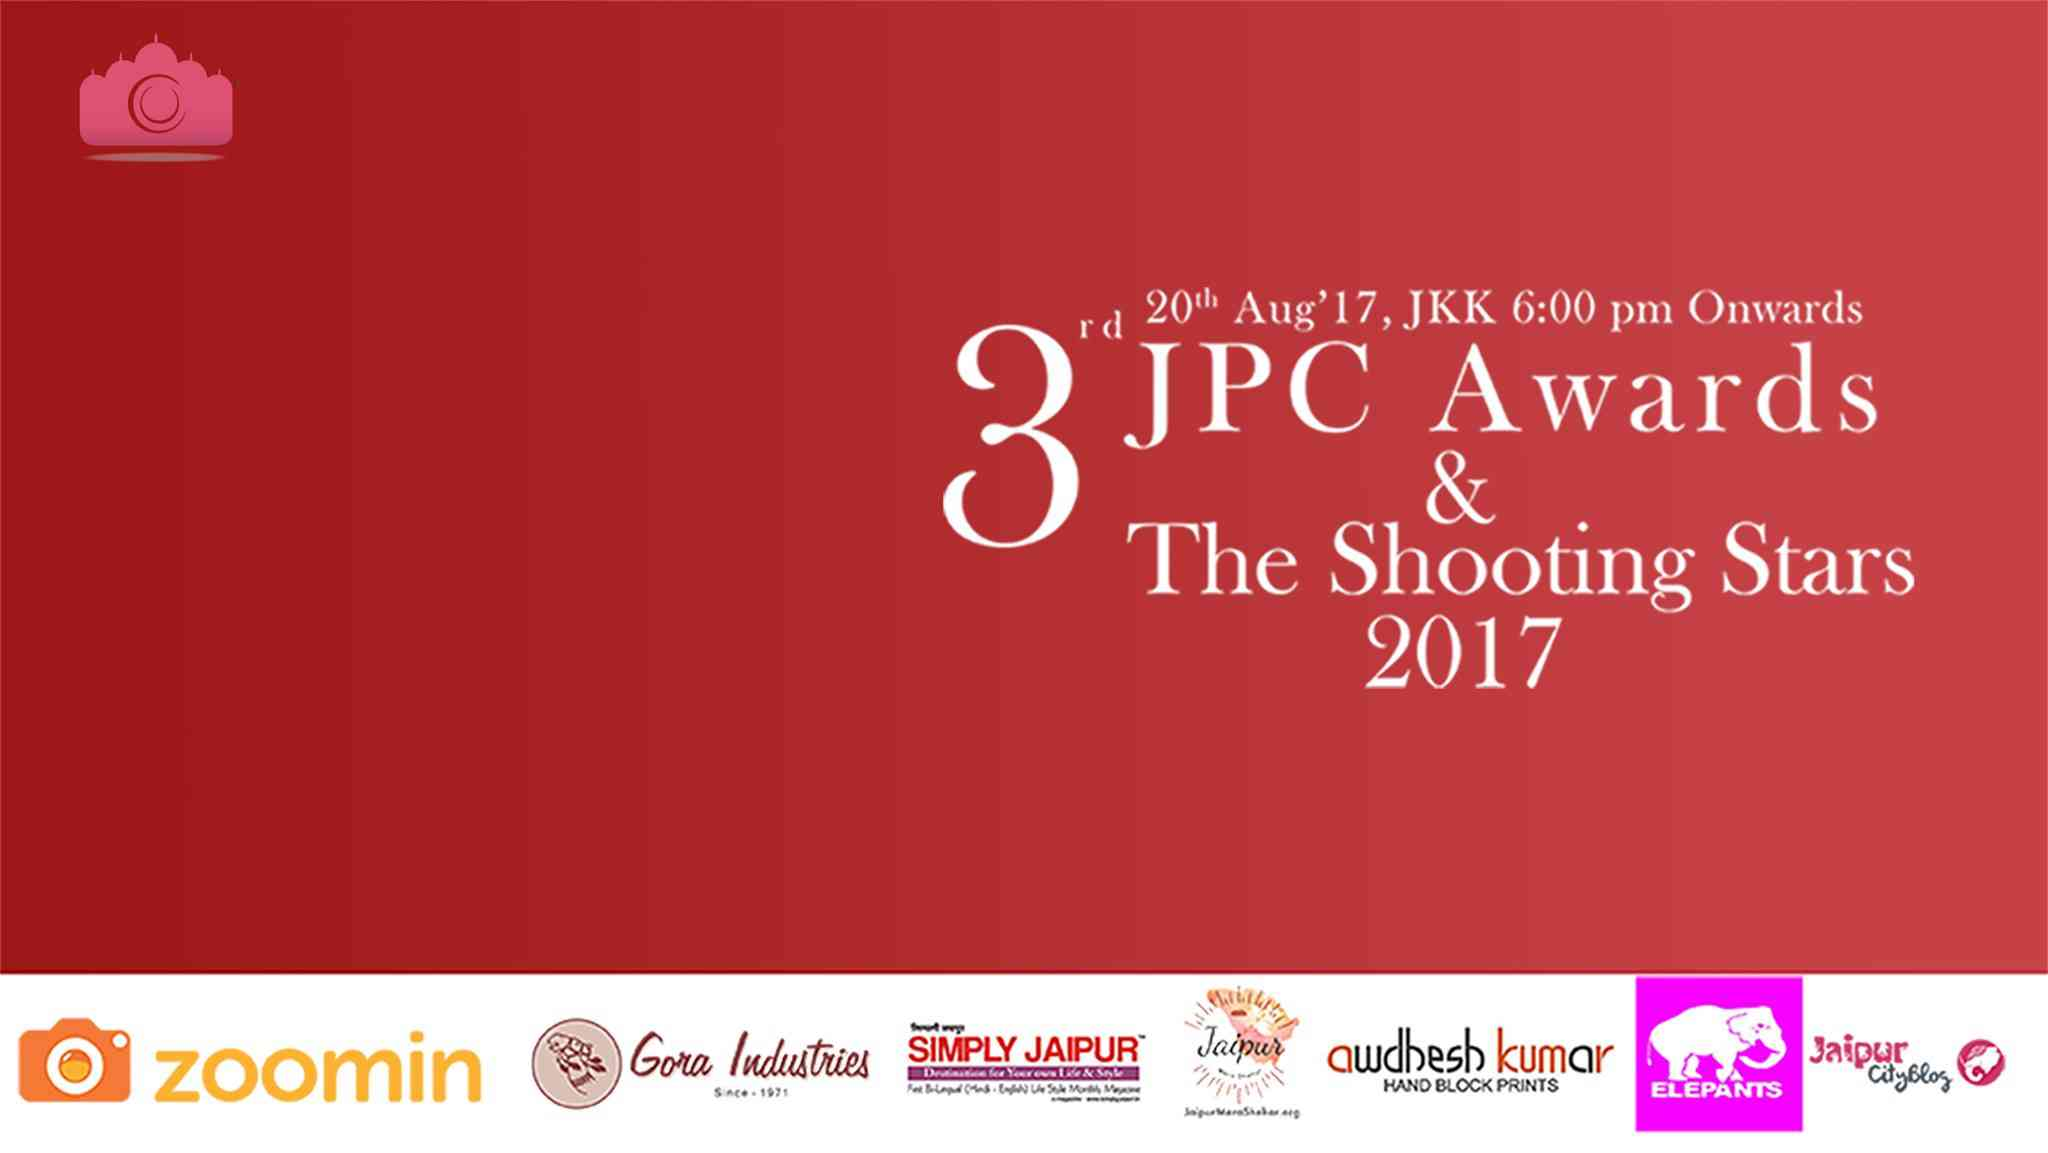 #jpcawards #theshootingstars #jaipurphotographersclub